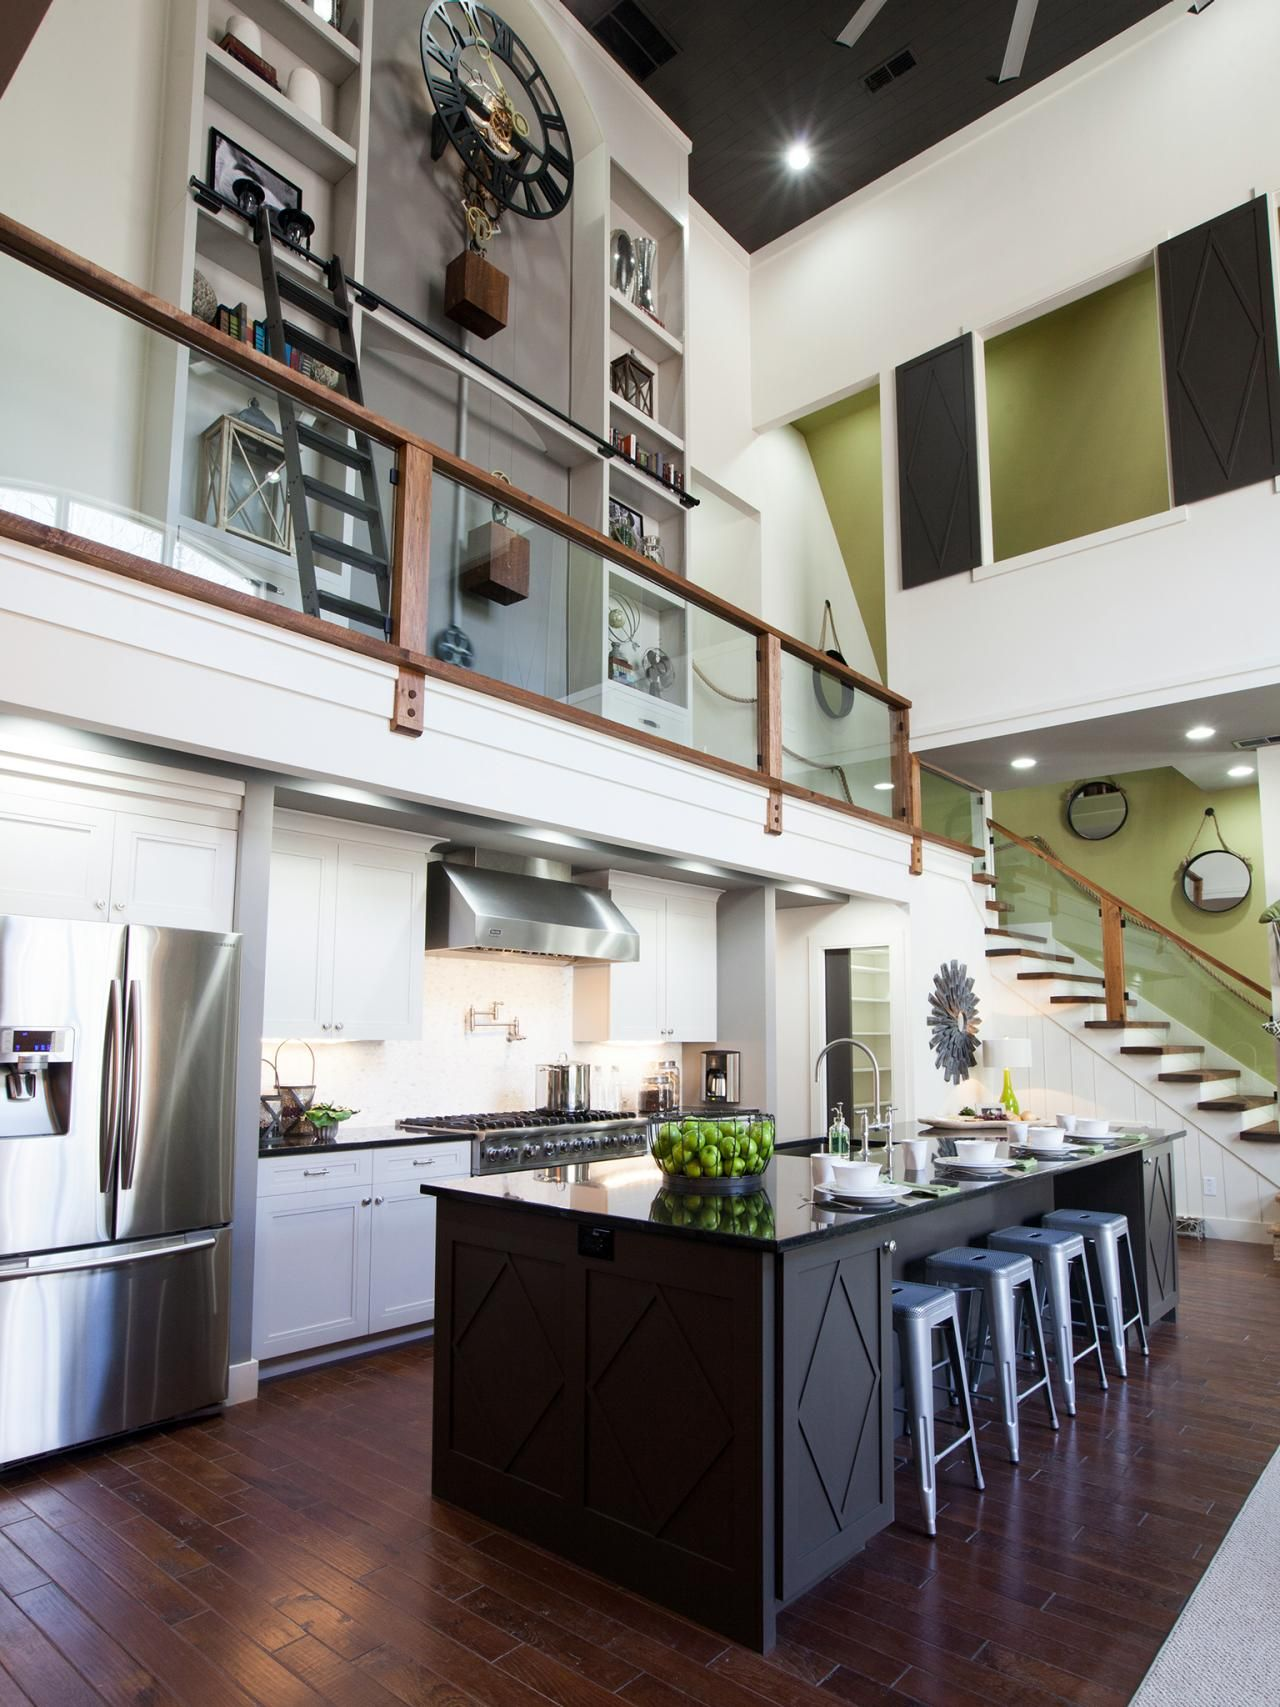 37 stylish kitchen designs for your barn home metal on best farmhouse kitchen decor ideas and remodel create your dreams id=77135